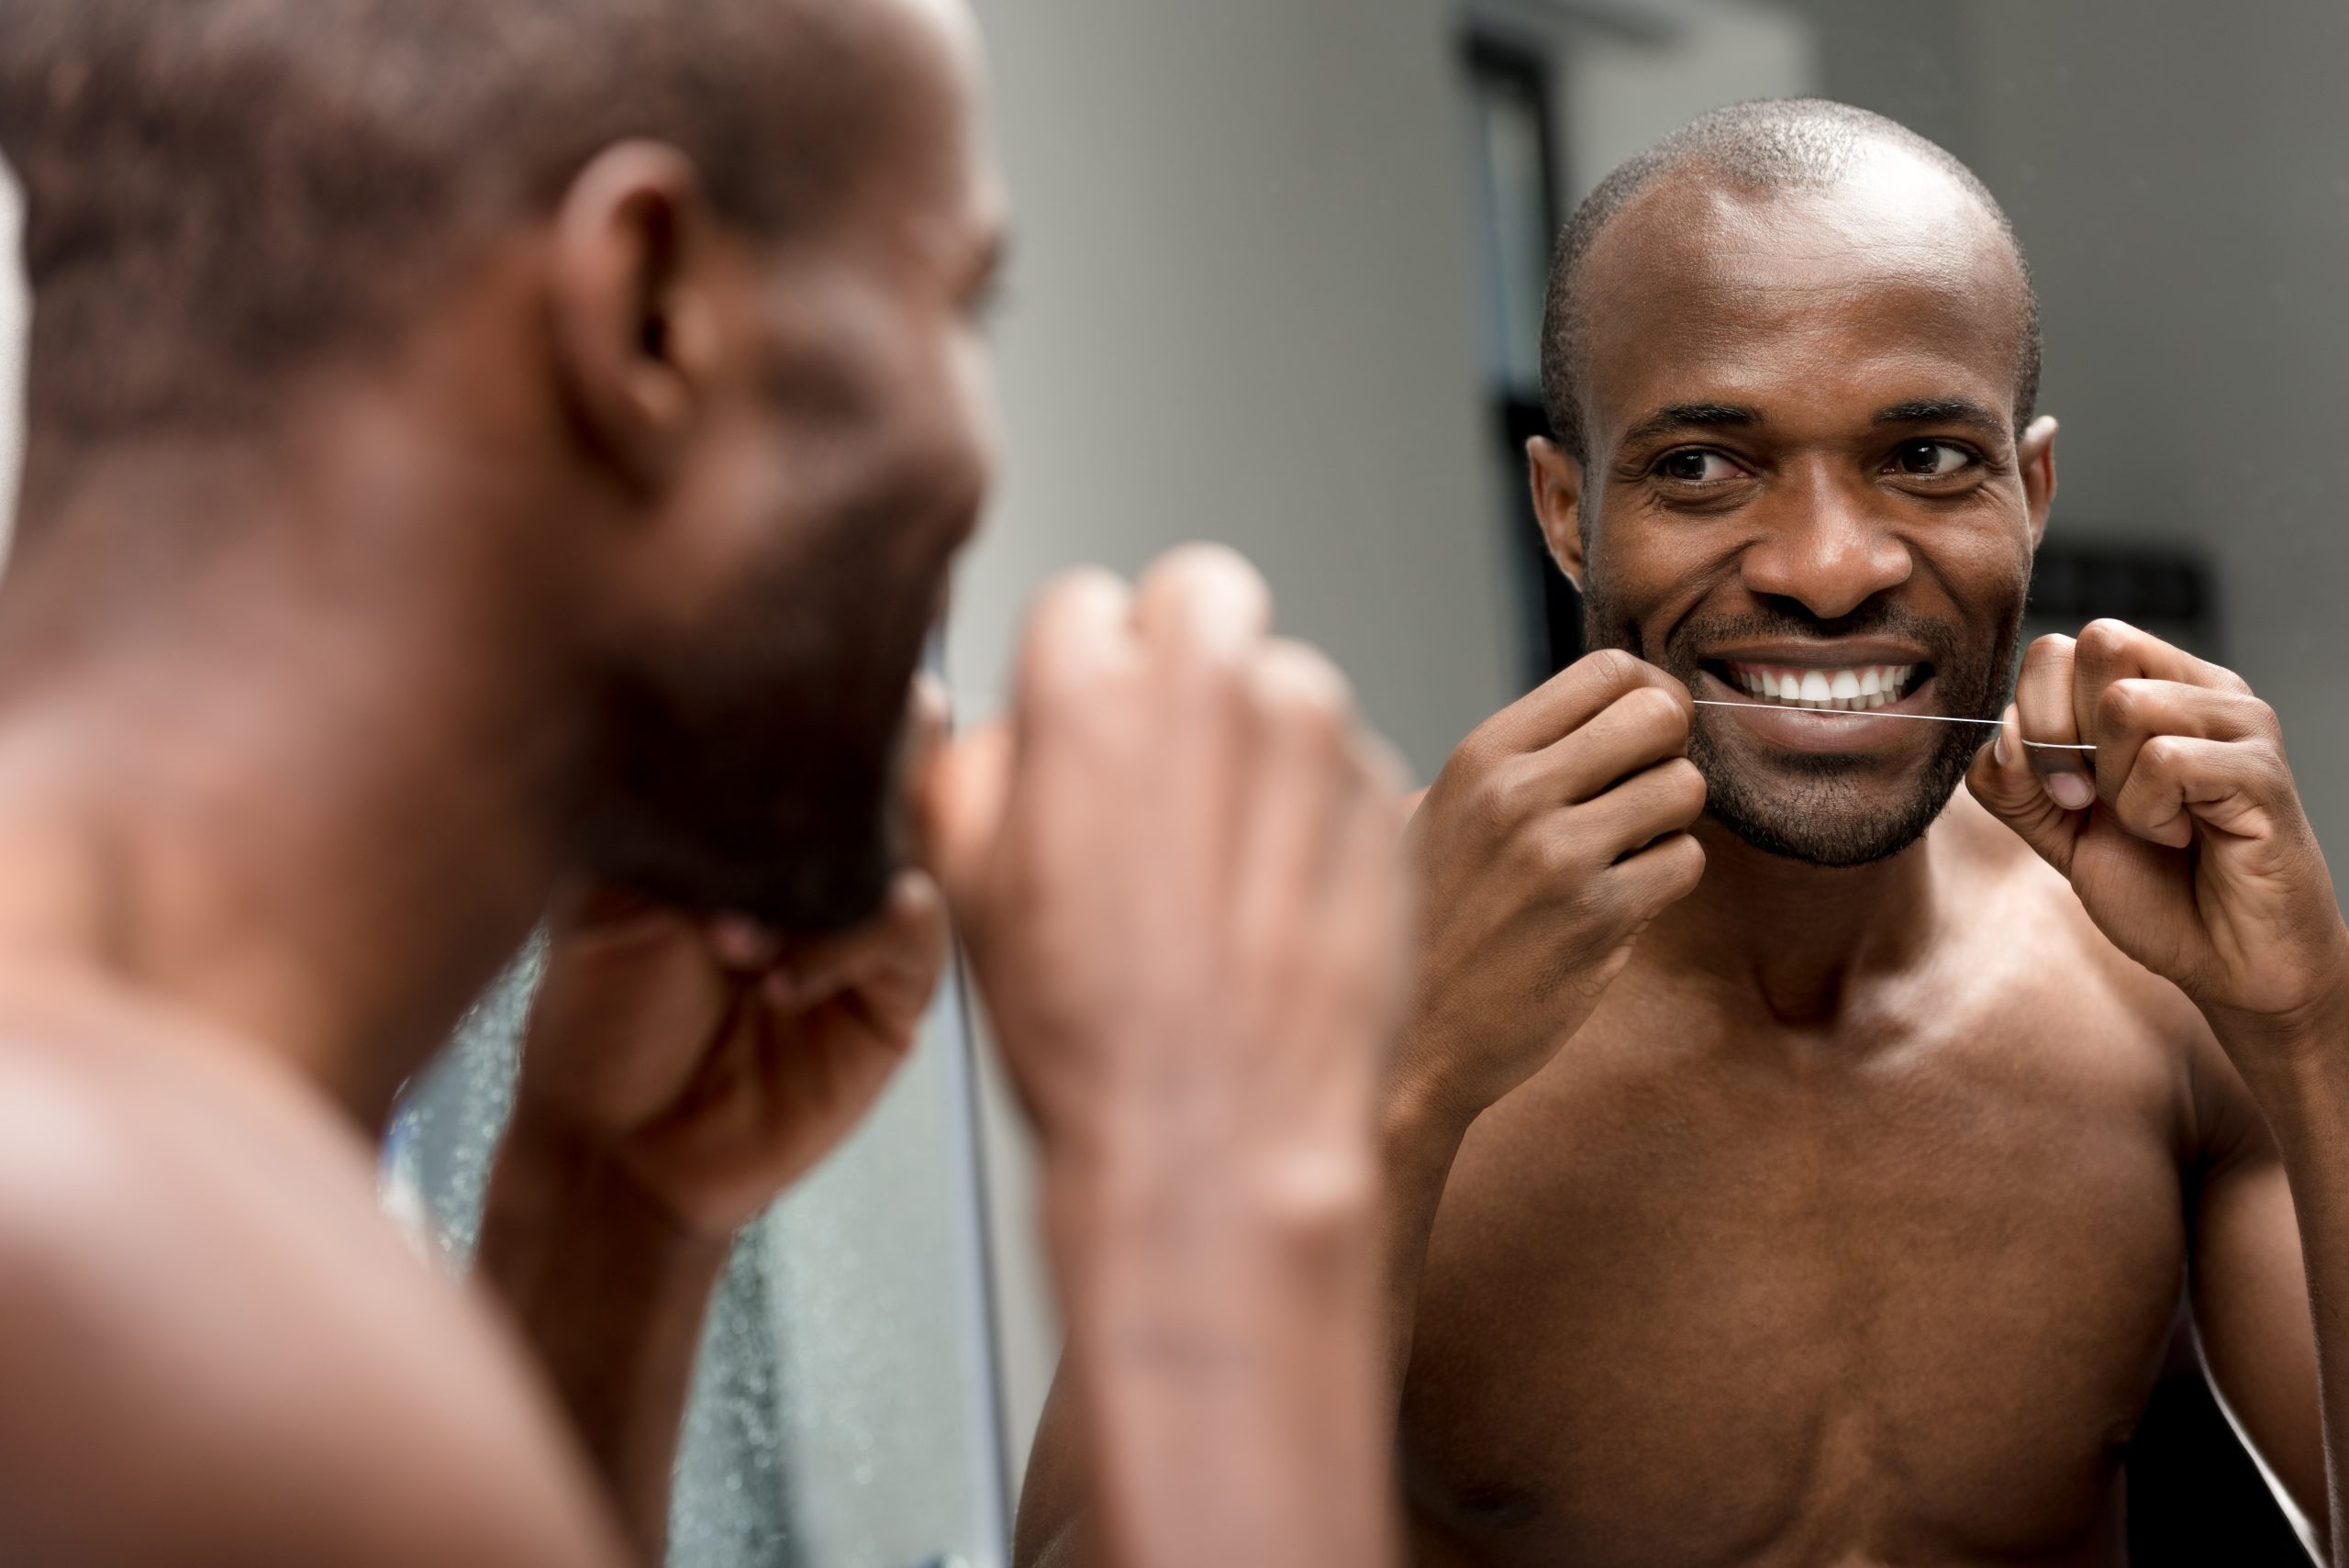 smiling young african american man holding dental floss and looking at mirror in bathroom